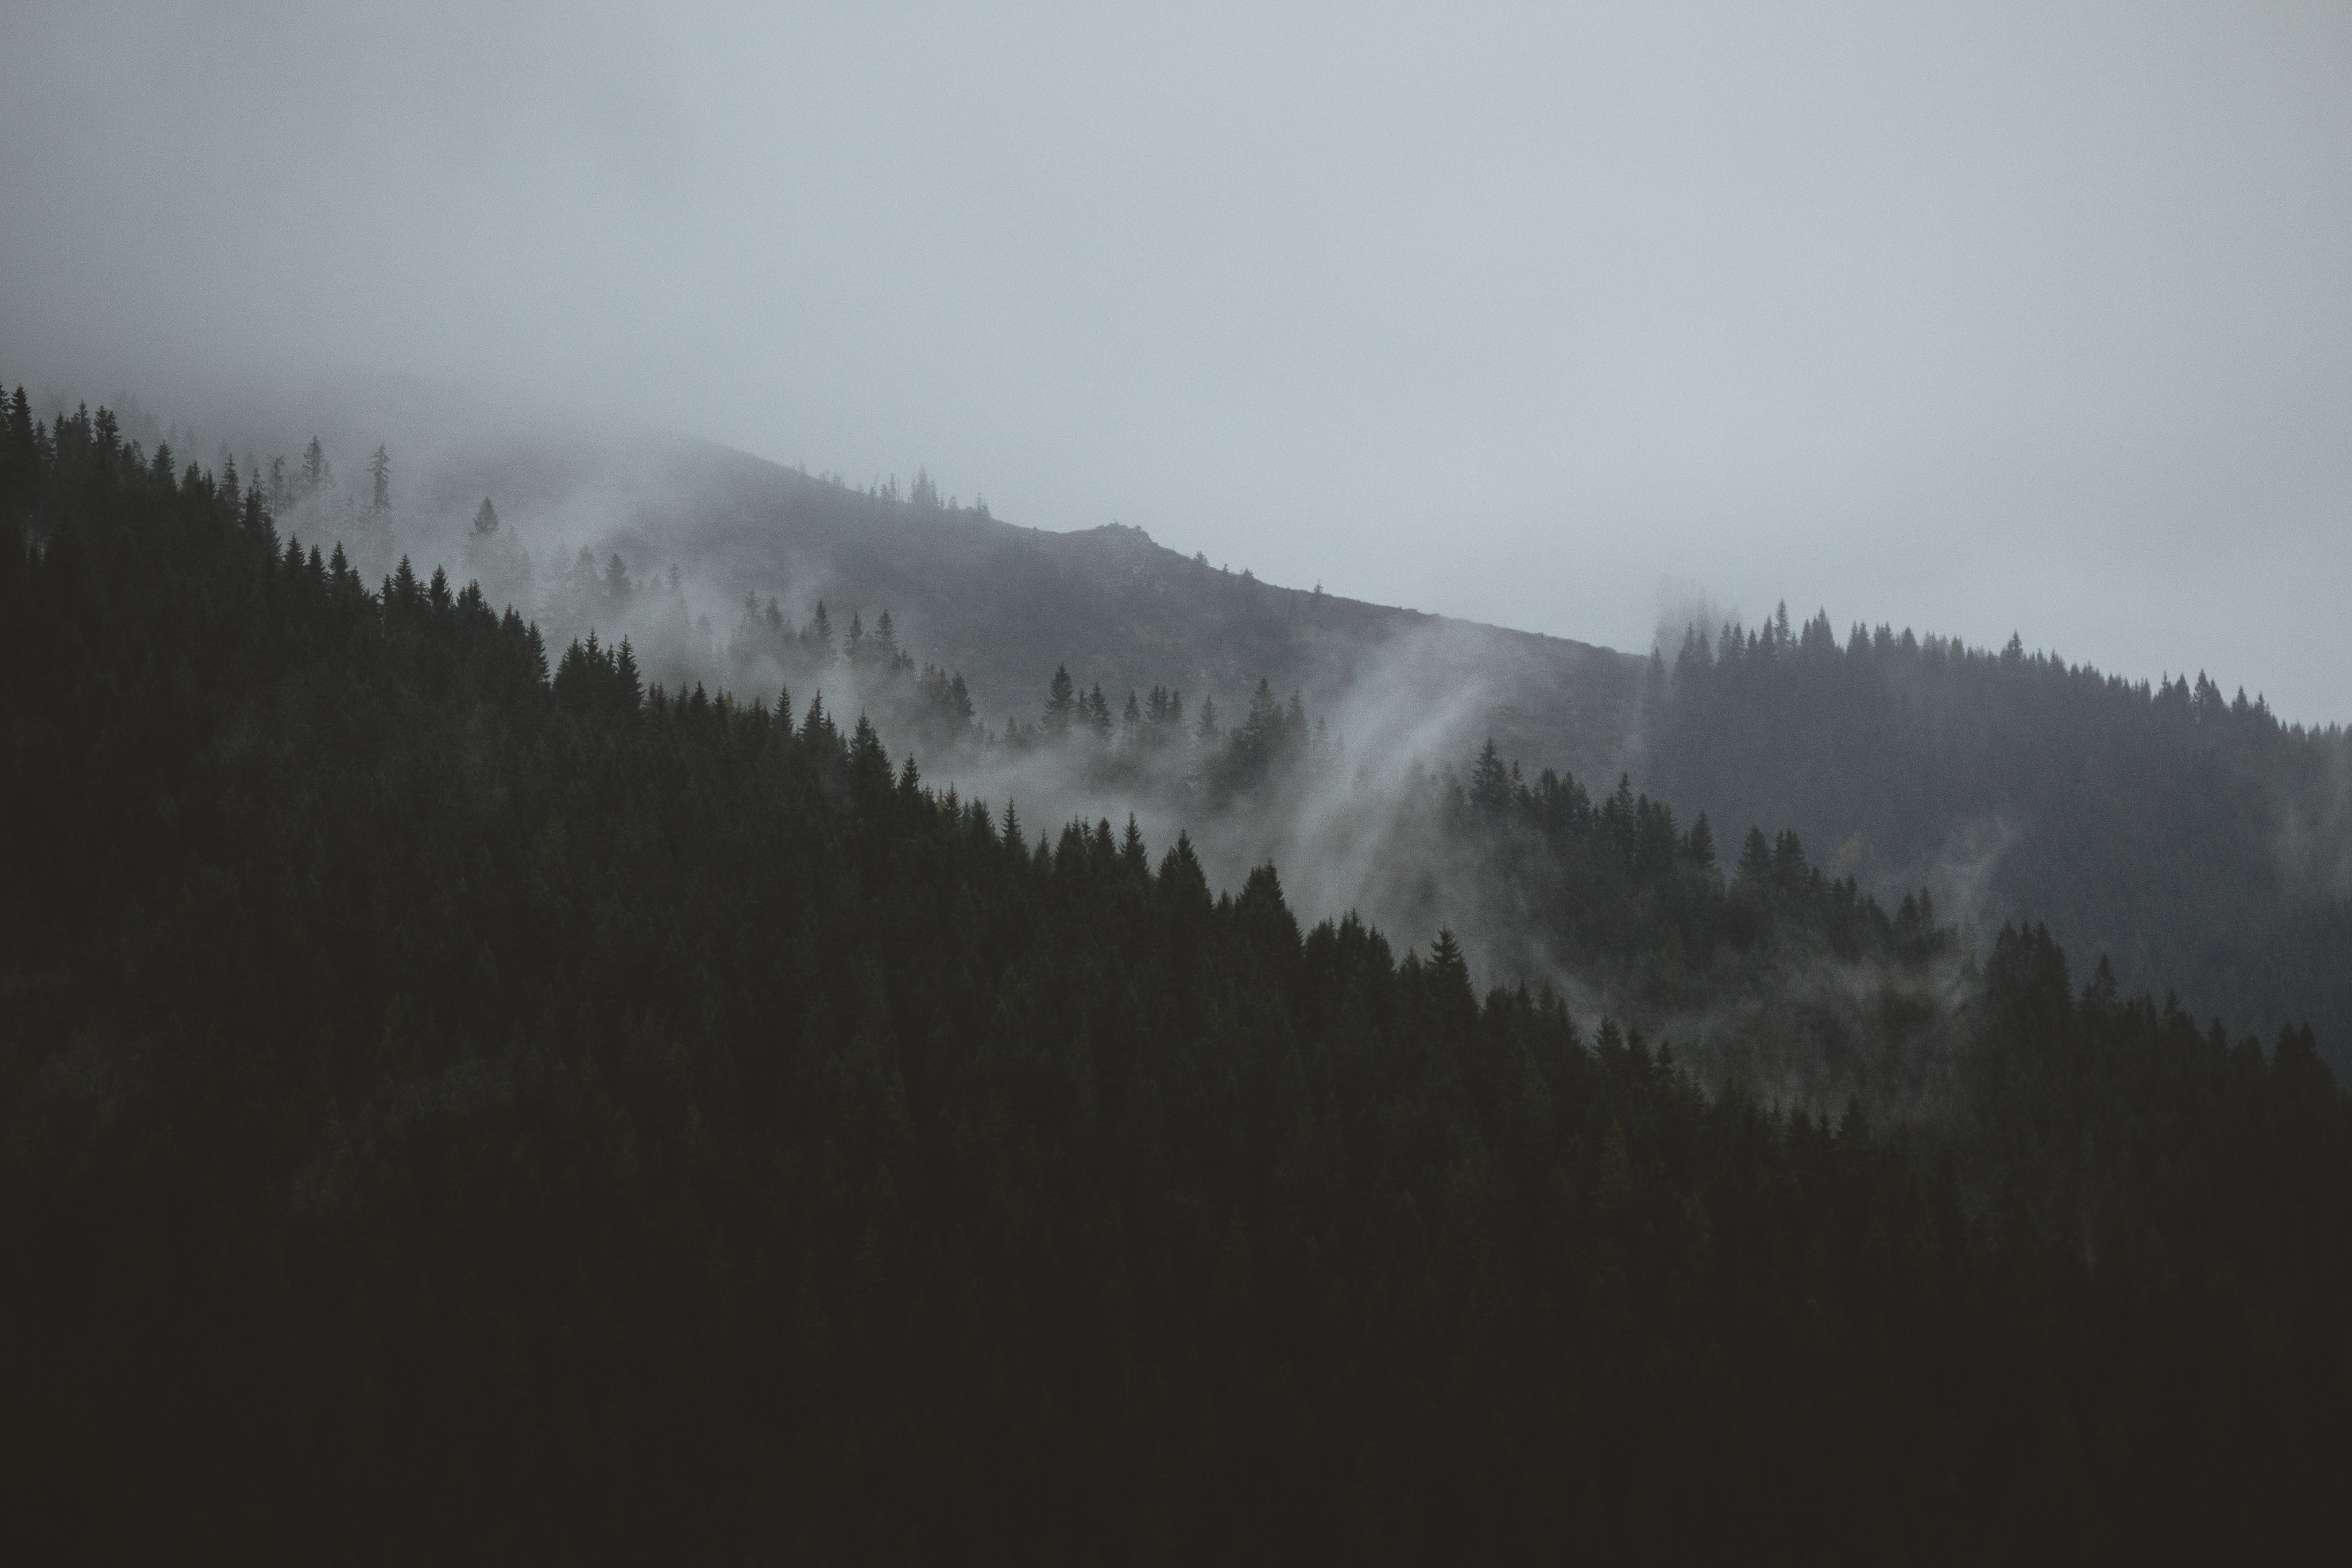 A dim shot of a misty wooded slope in Slovakia